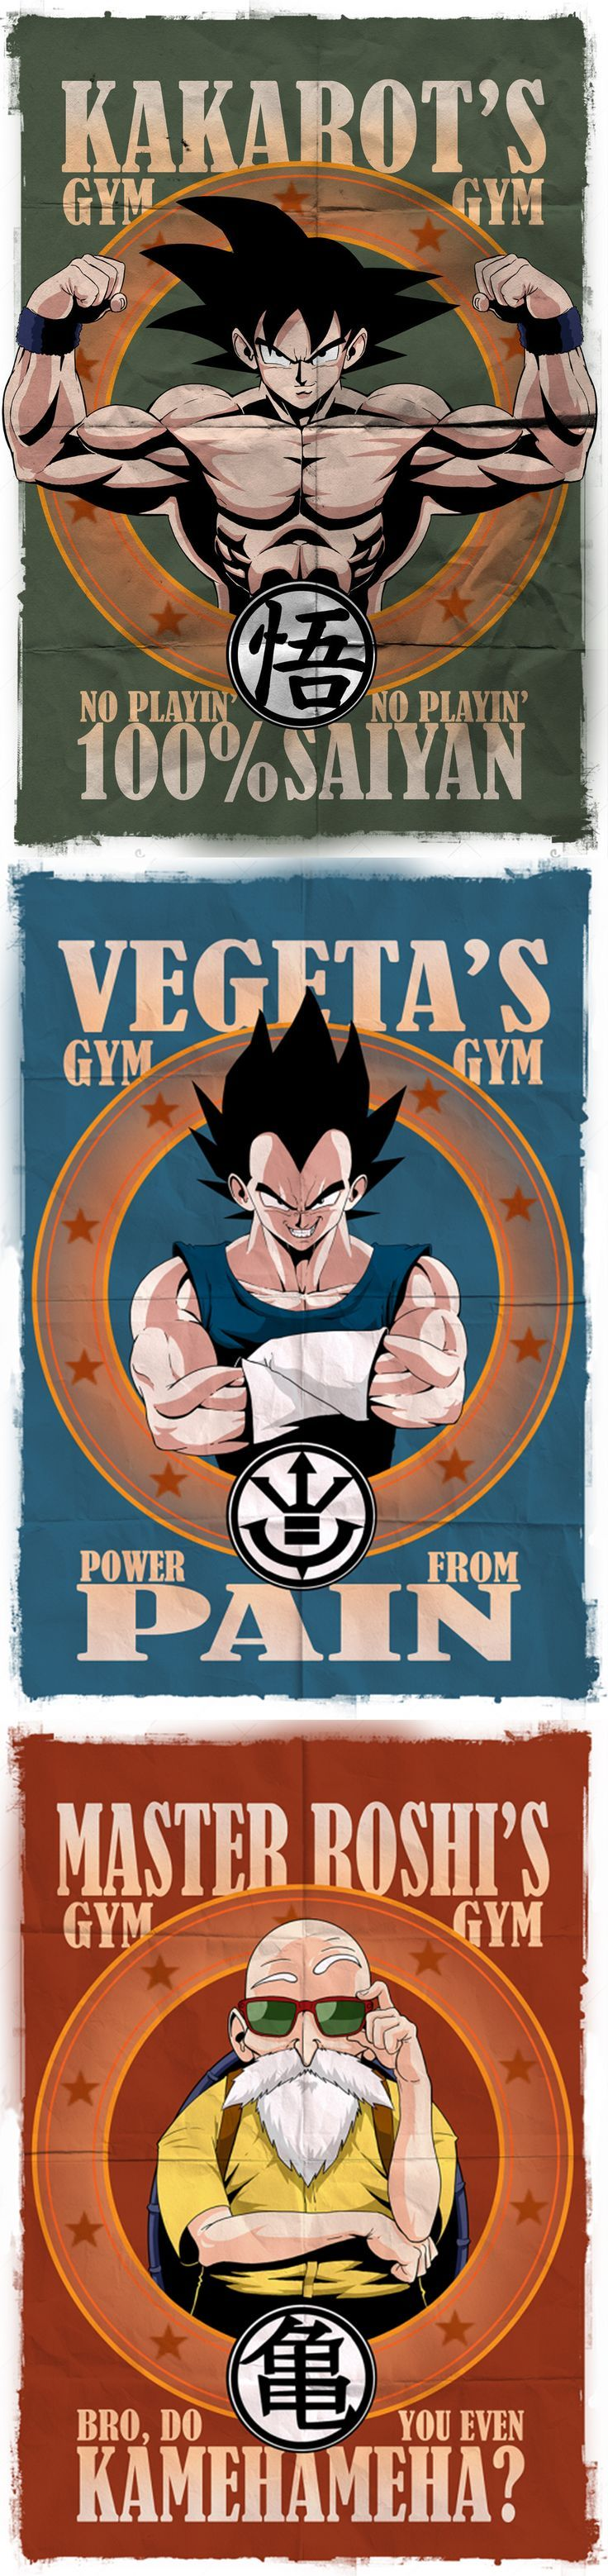 Dragon Ball Z Gyms. I seriously want all of these on a shirt. - Visit now for 3D Dragon Ball Z shirts now on sale!